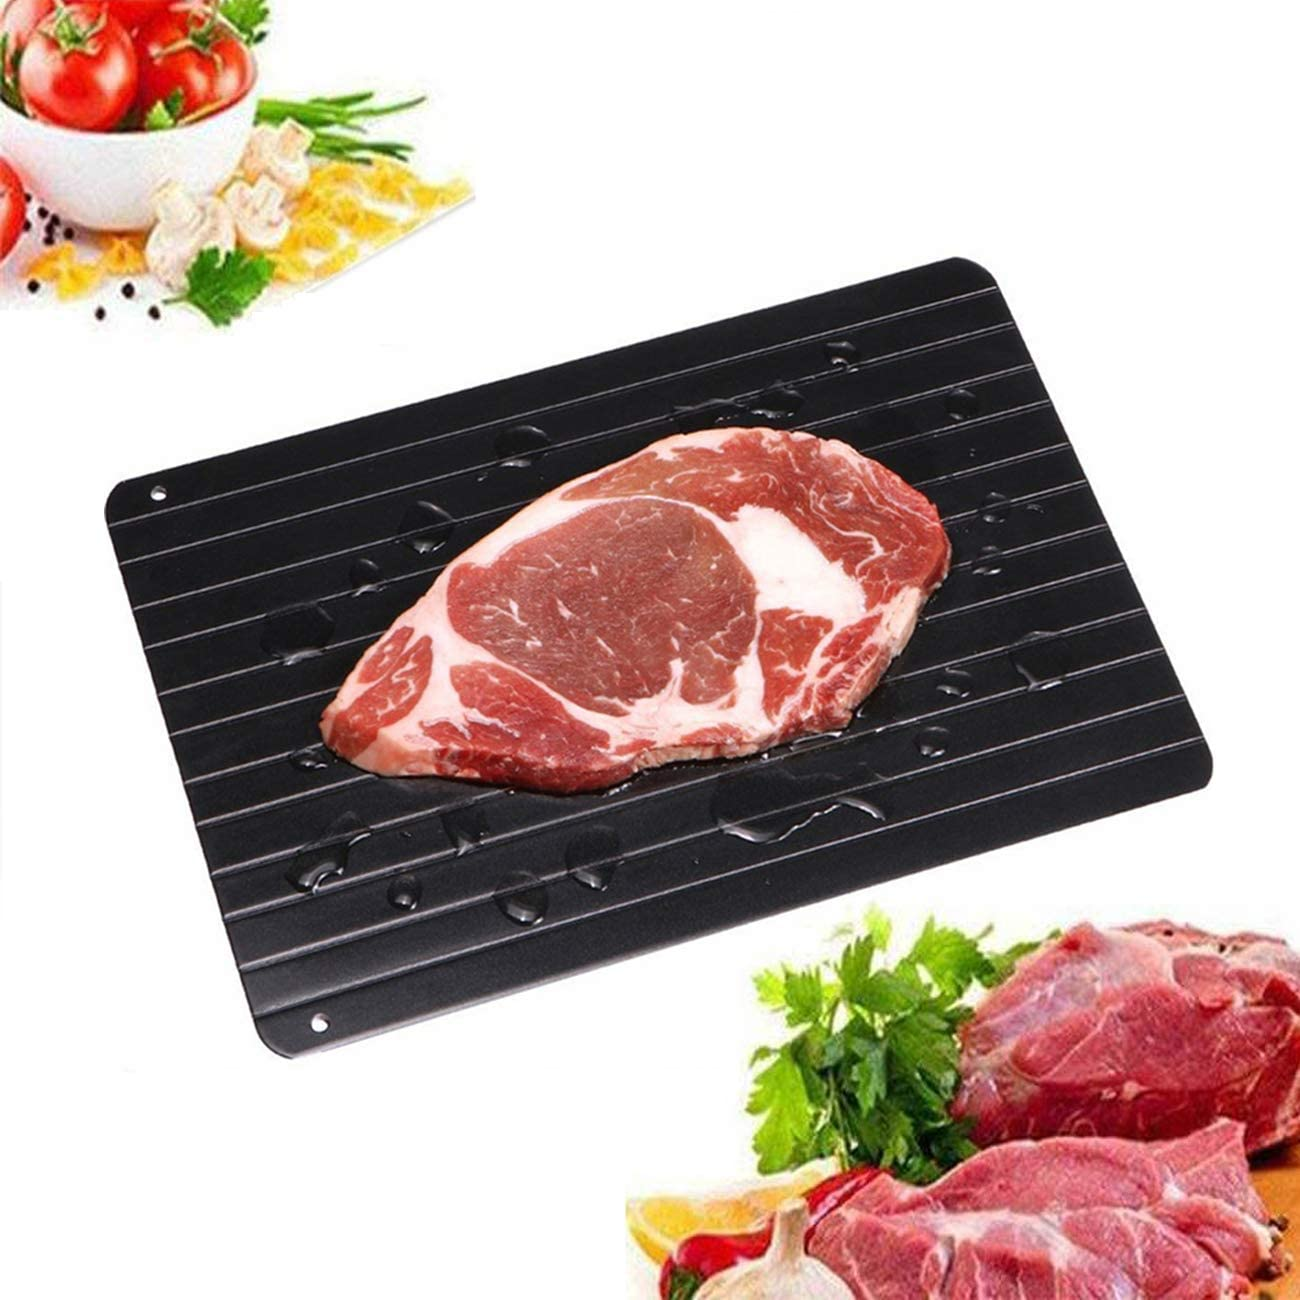 Fast Defrosting Tray for Natural Thawing Frozen Meat, Rapid Thawing Plate & Board for Frozen Meat & Food, Defrosting Mat Thaw Meat Quickly, Eco-friendly, No Electricity, No Chemicals, No Microwave